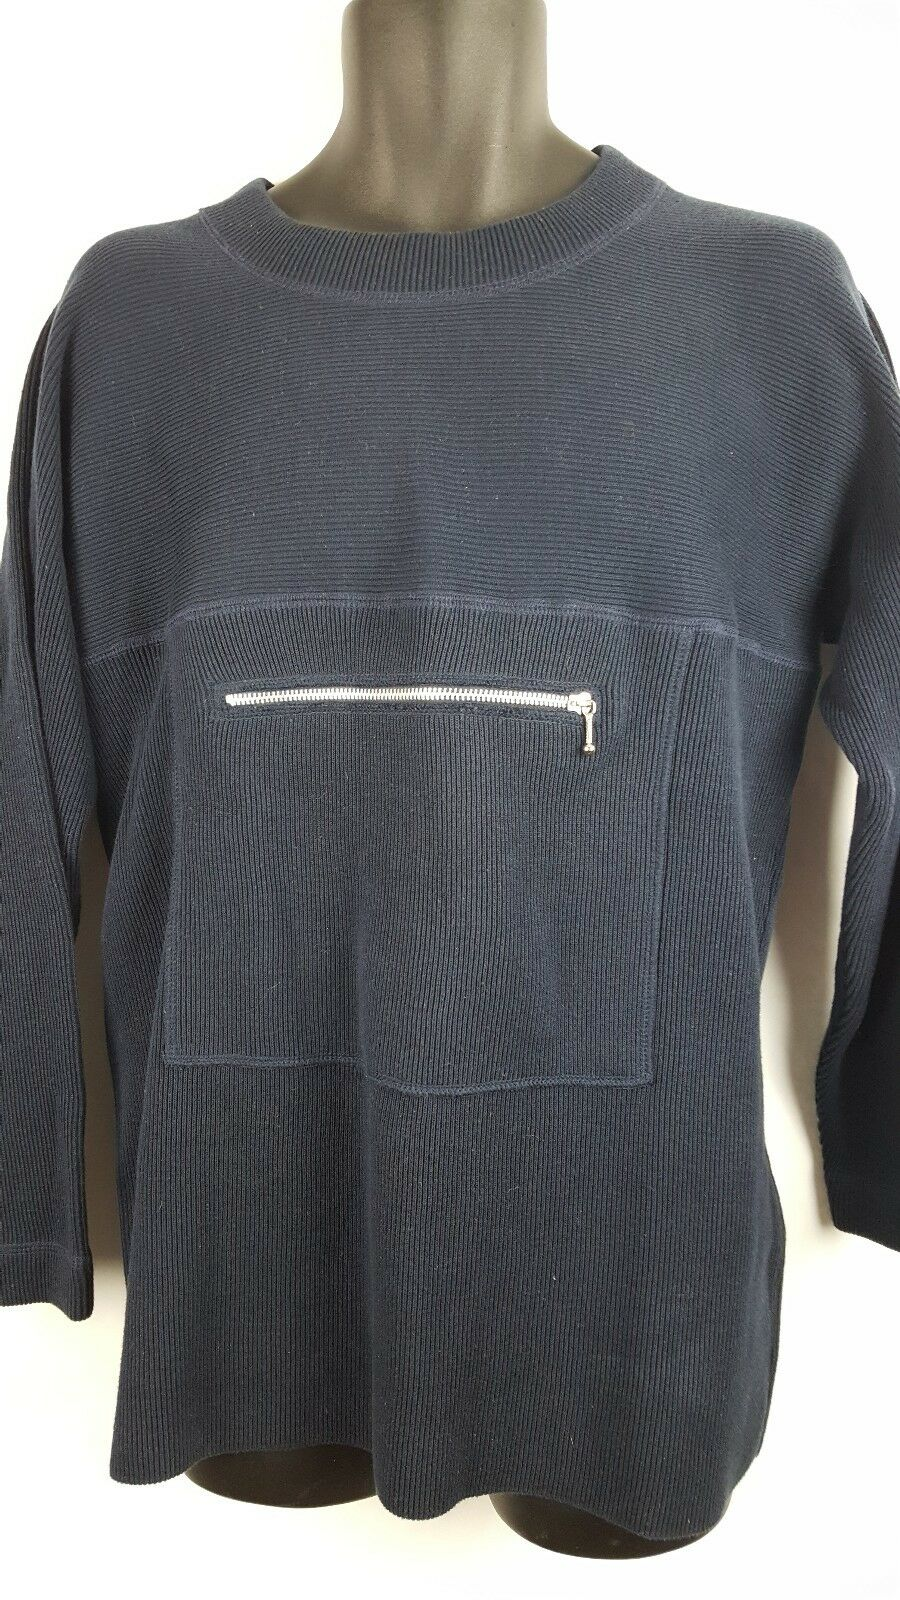 Vintage Richard Sport Sample Rare Chest Zipper Long Sleeve Small bluee I1